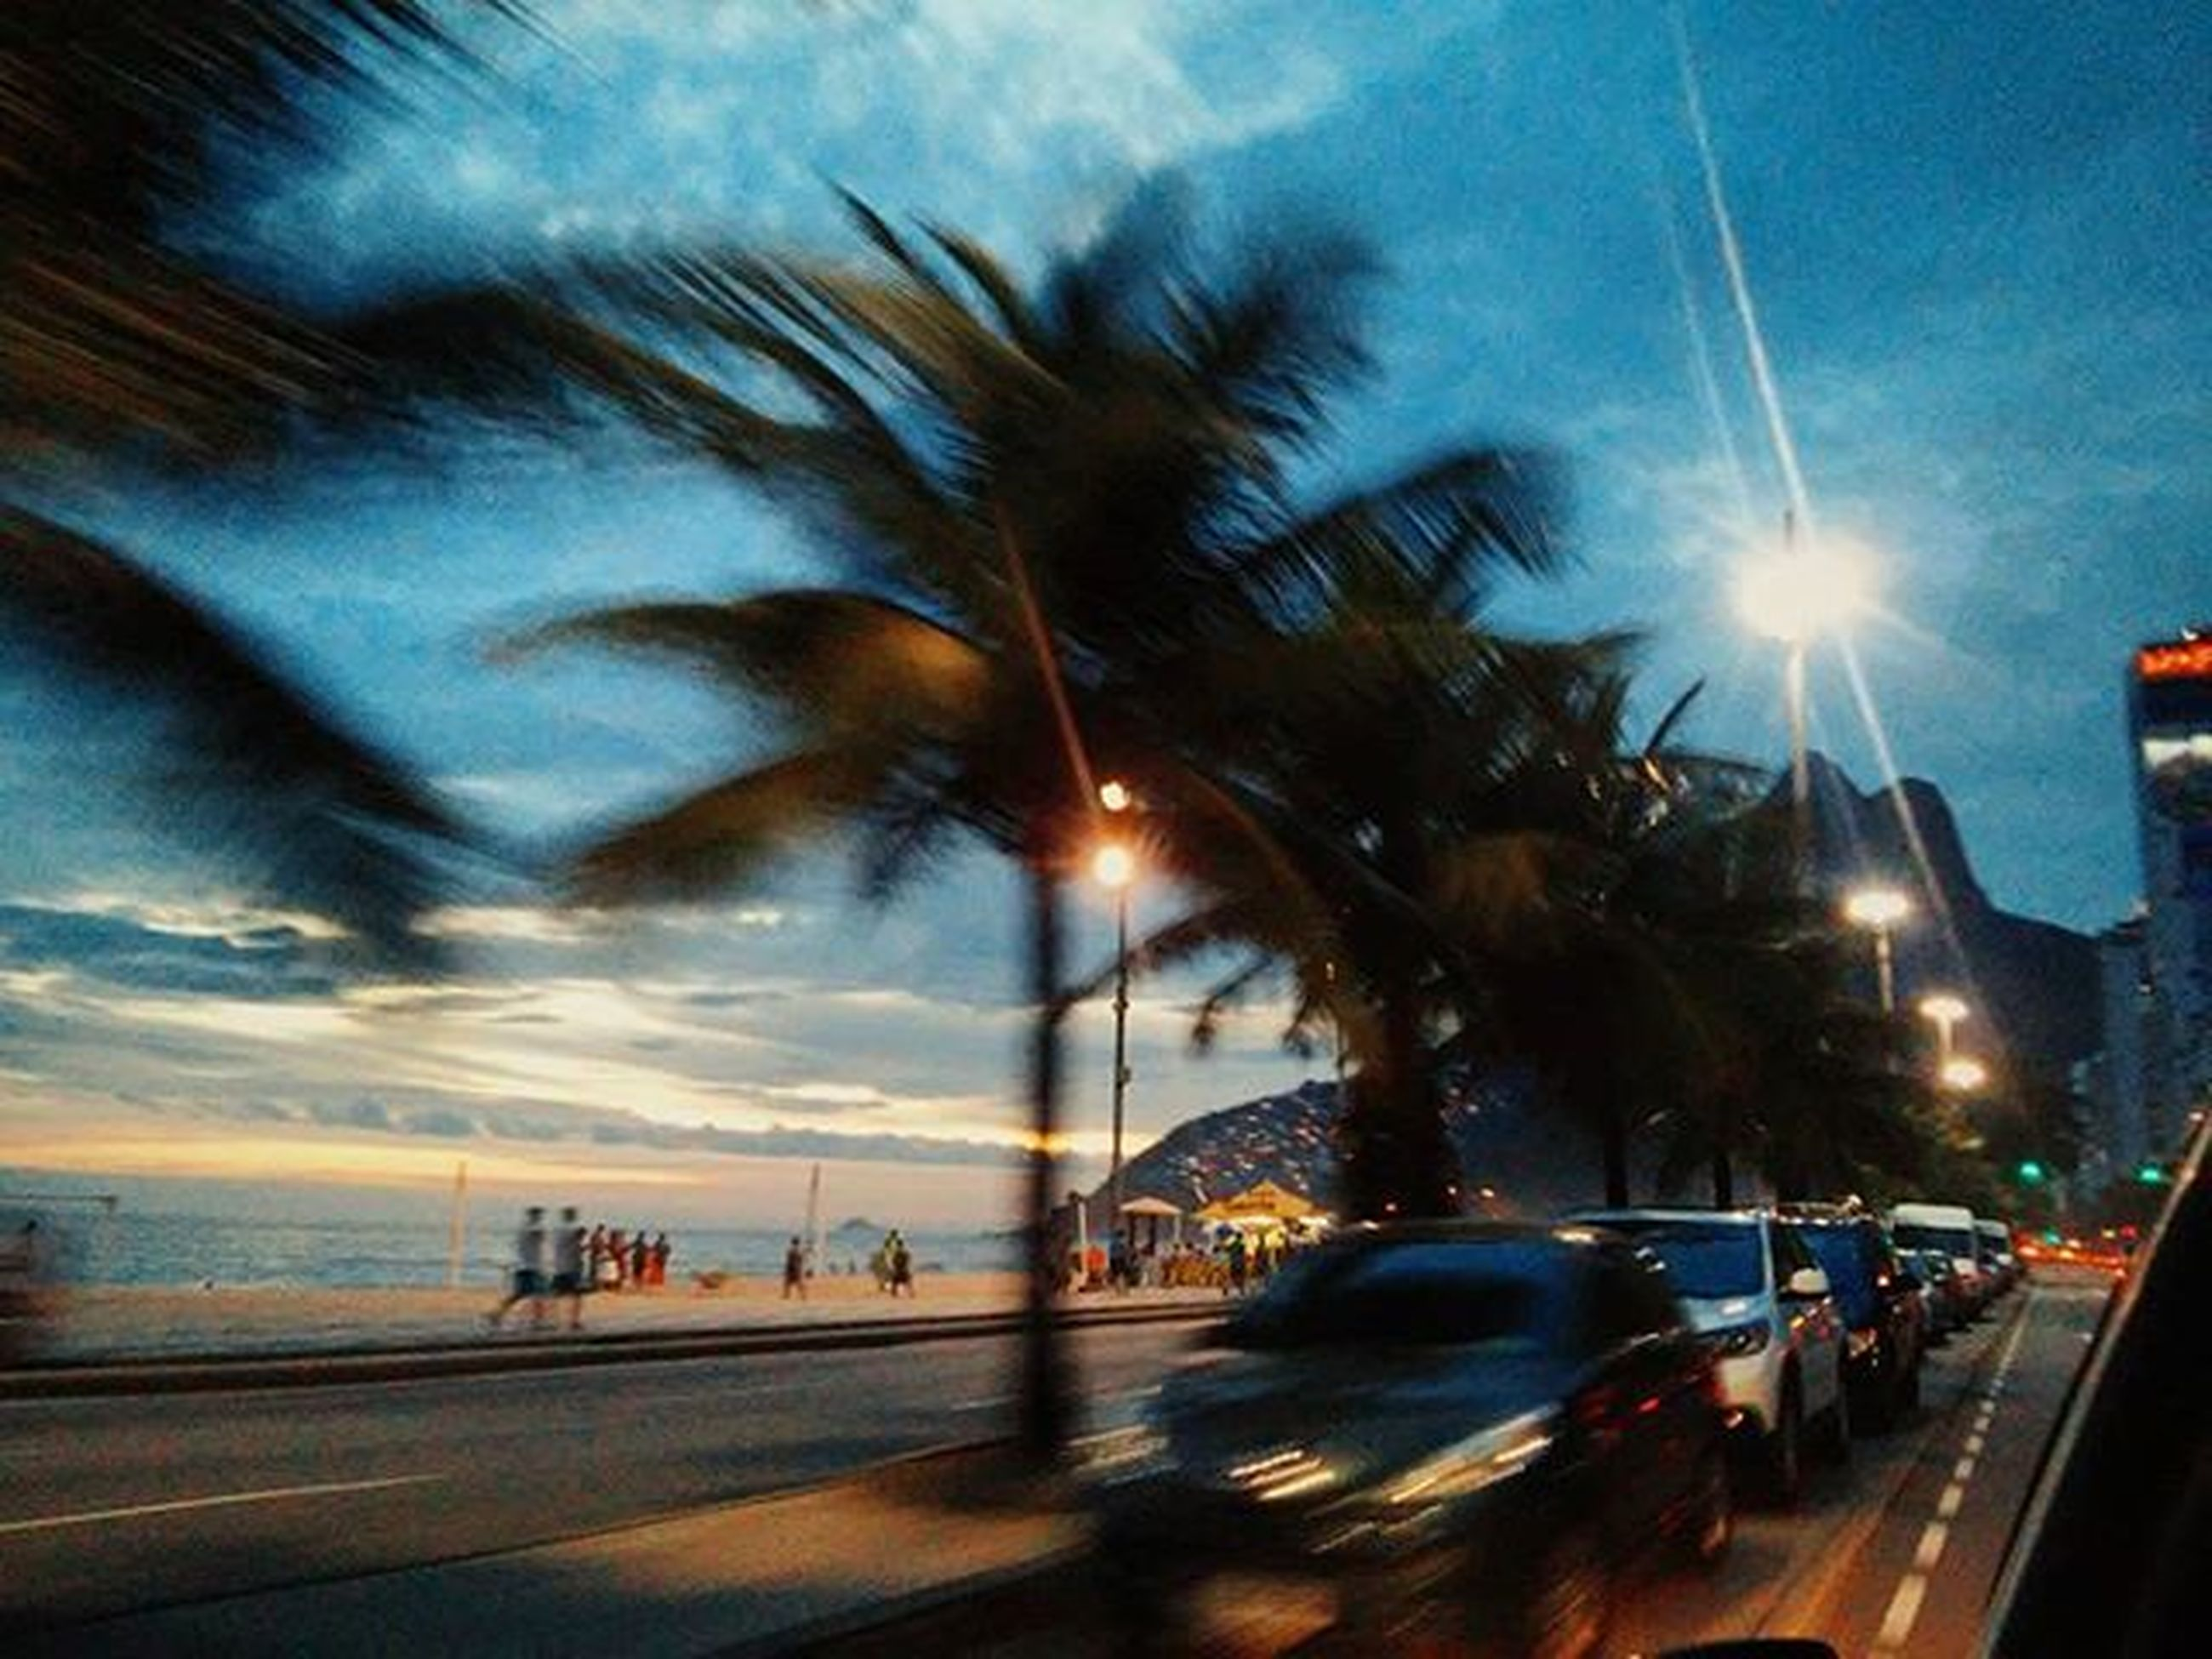 transportation, car, land vehicle, road, sky, mode of transport, street, sun, sunset, cloud - sky, sea, street light, sunbeam, palm tree, on the move, sunlight, city, traffic, travel, motion